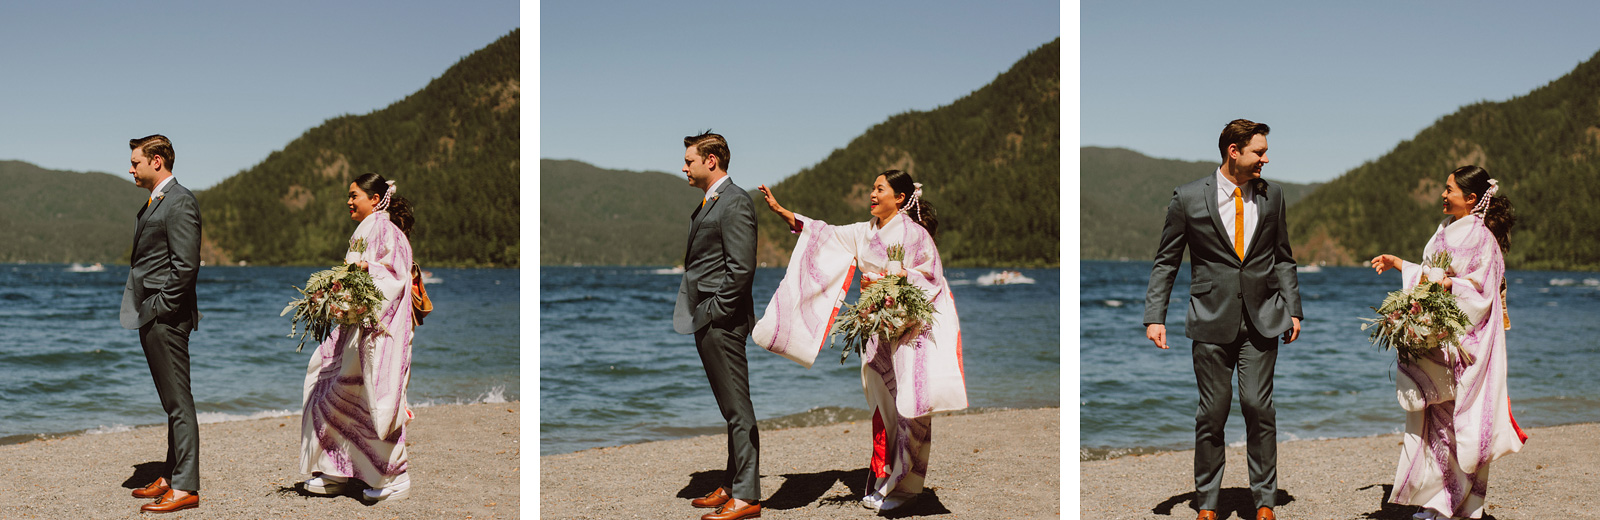 Bride and Groom's First Look on Lake Crescent | Olympic National Park Wedding